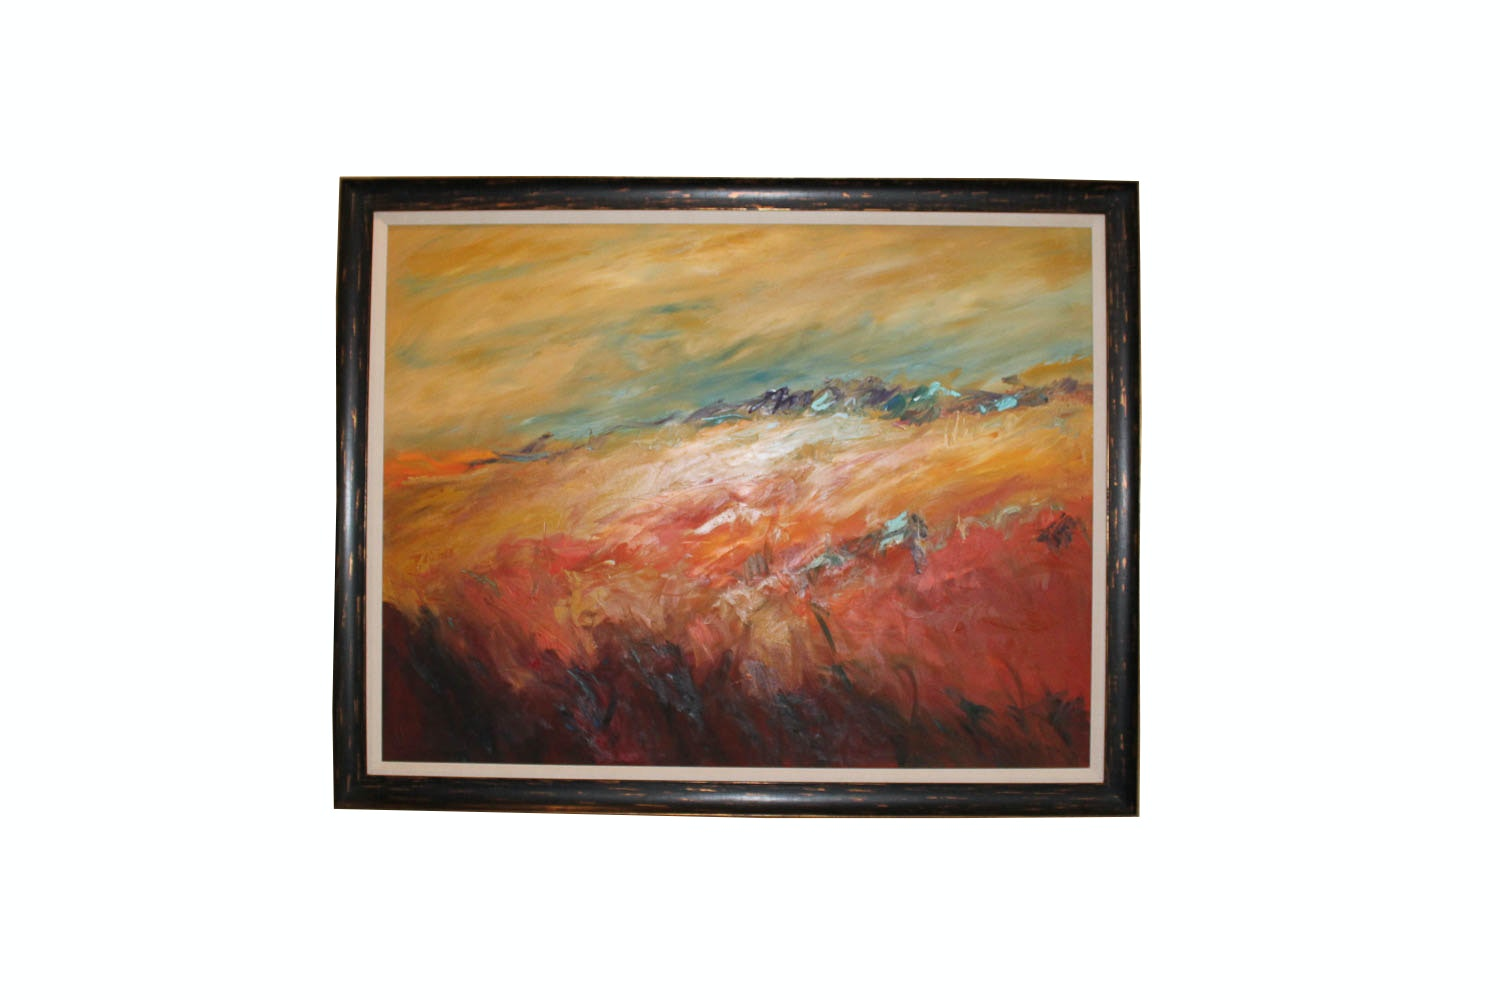 Trish Weeks Large Oil on Canvas Abstract Landscape